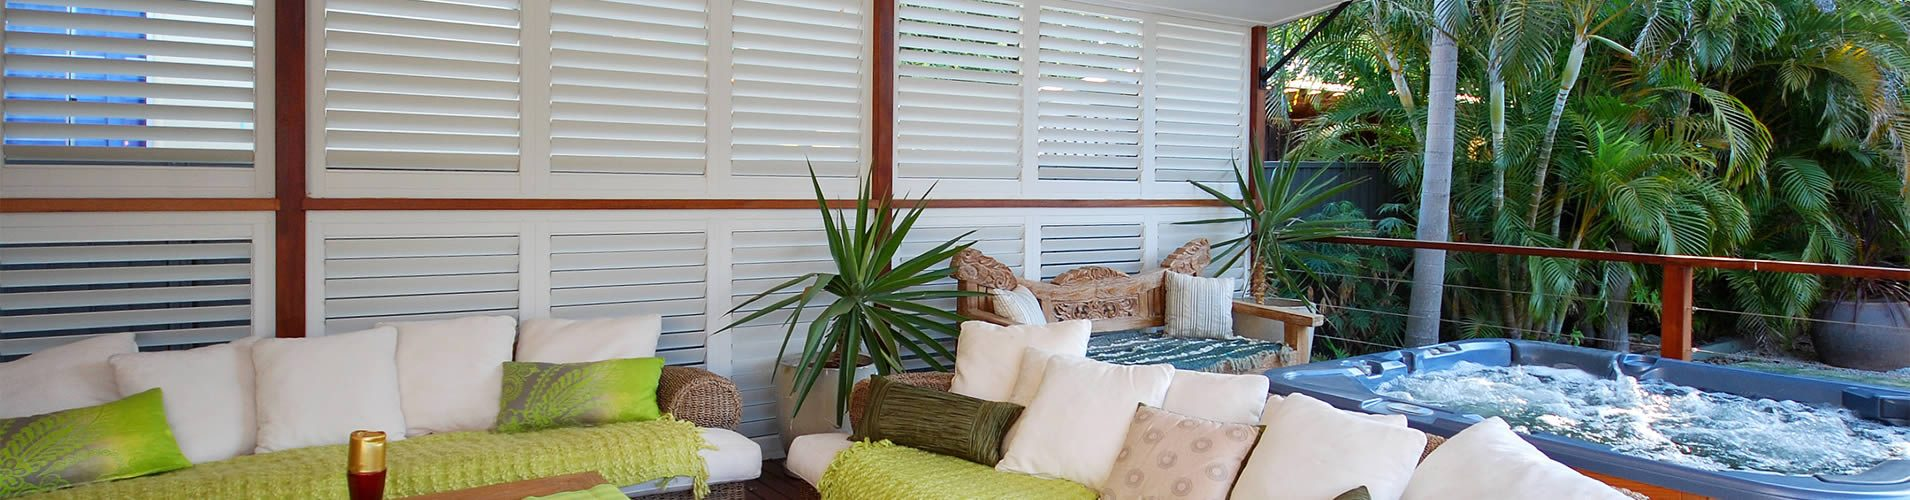 Outdoor Shutters Austin Texas